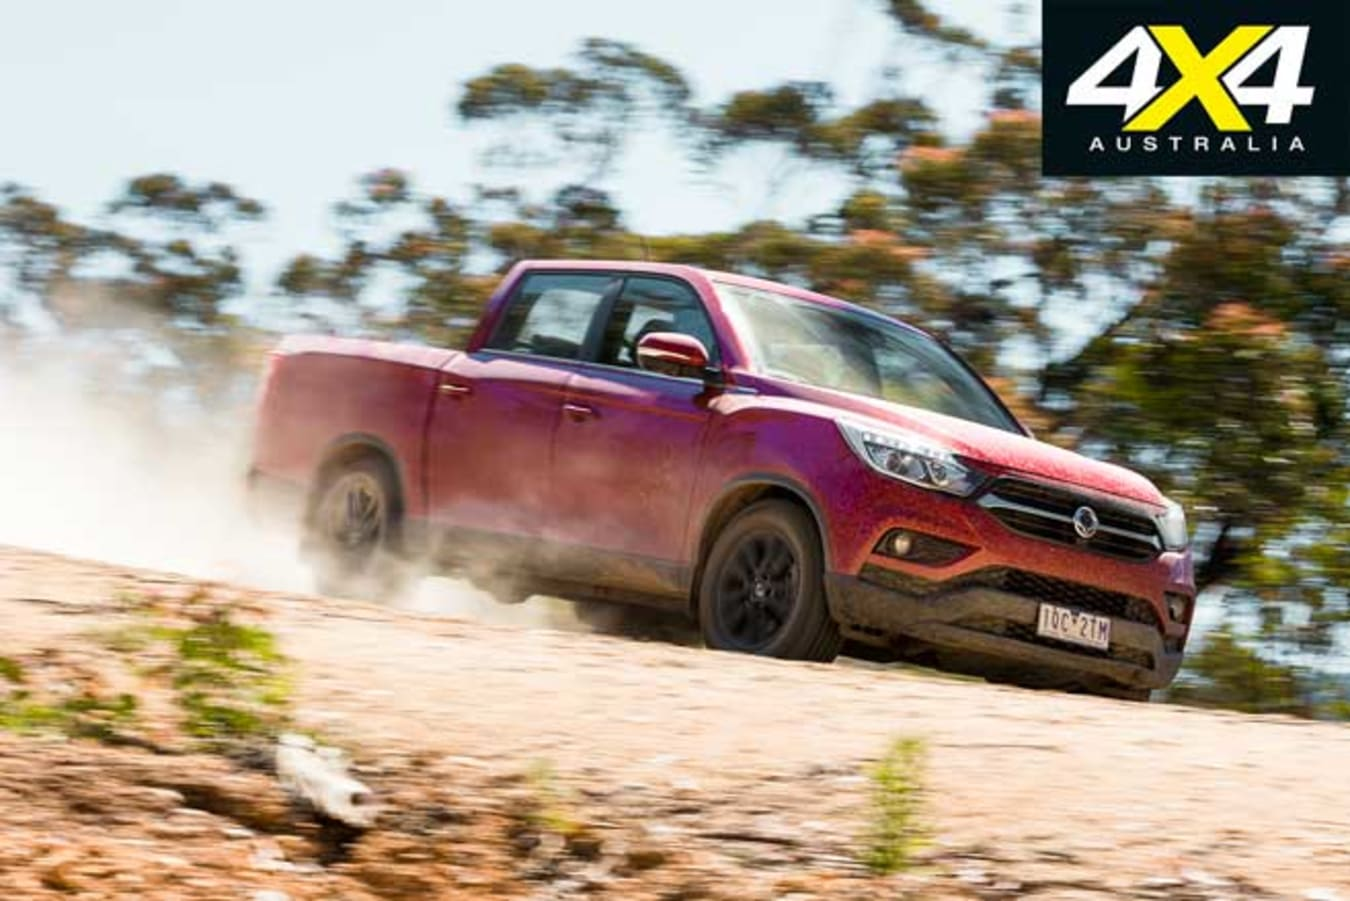 2020 4 X 4 Of The Year Ssangyong Musso XLV Ultimate Touring Jpg